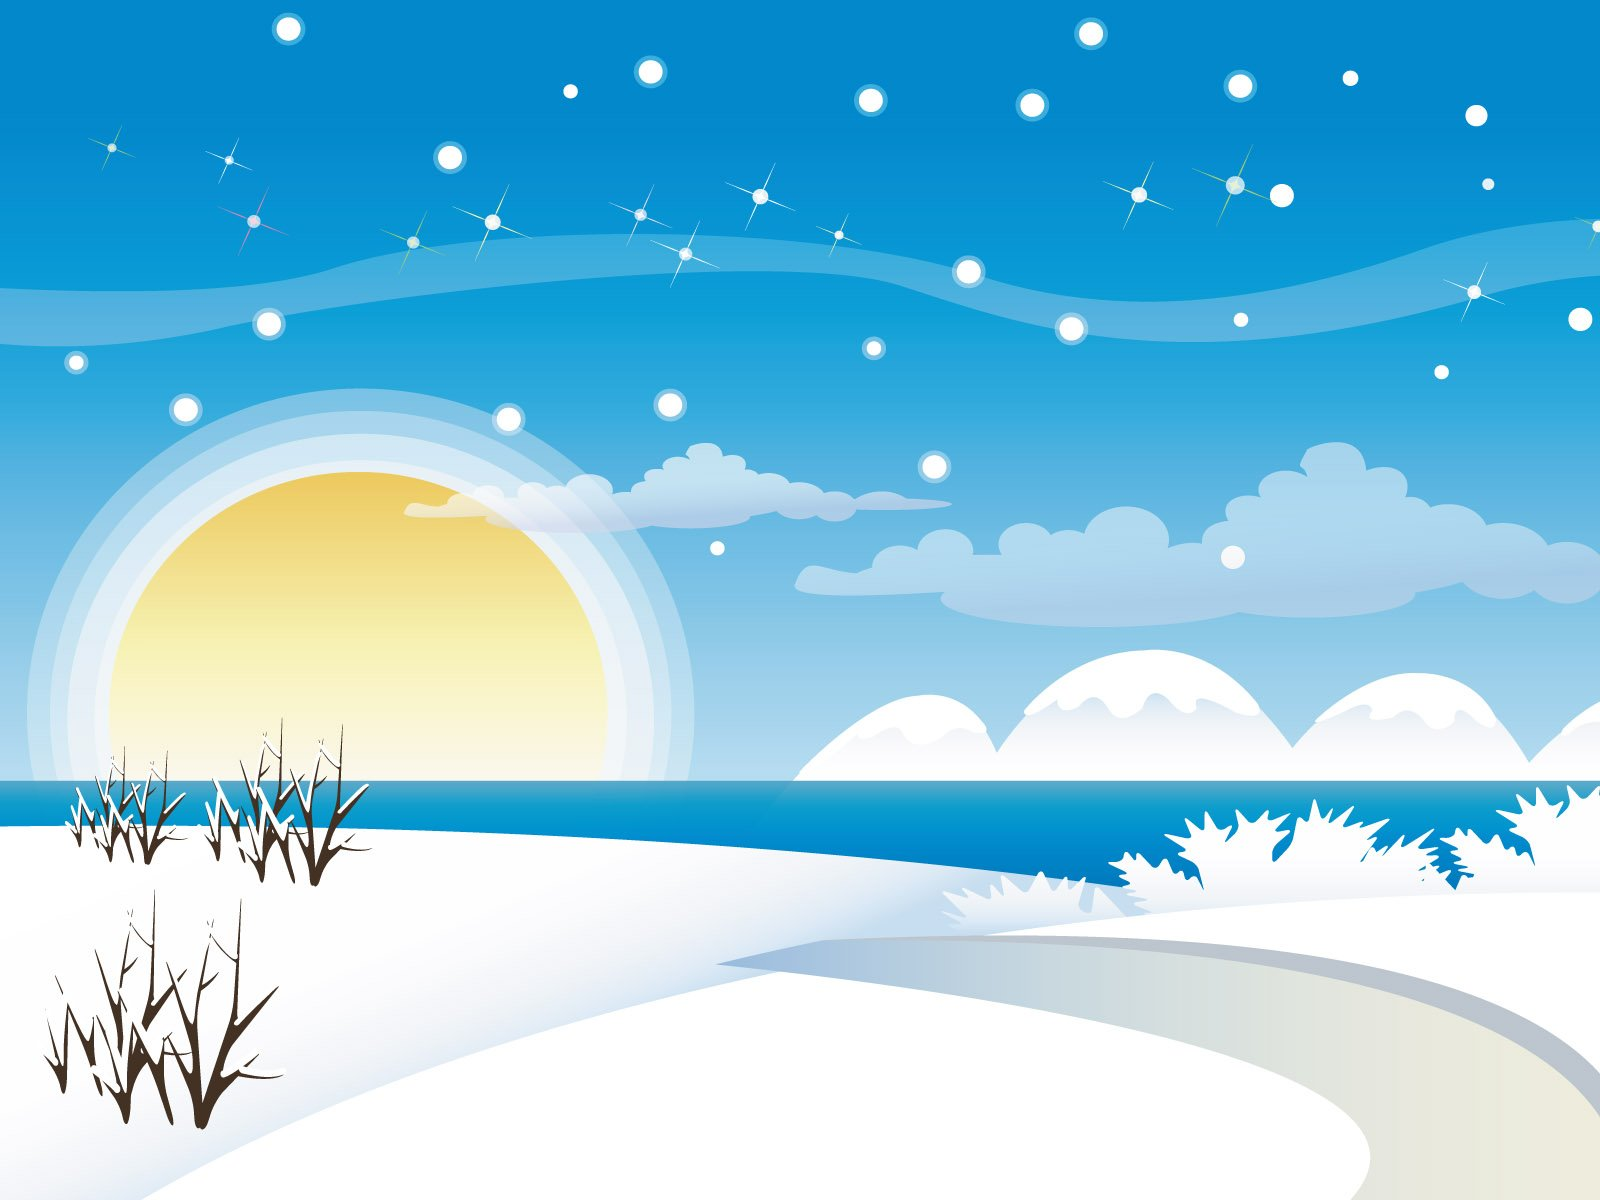 [48+] Cartoon Winter Wallpaper on WallpaperSafari